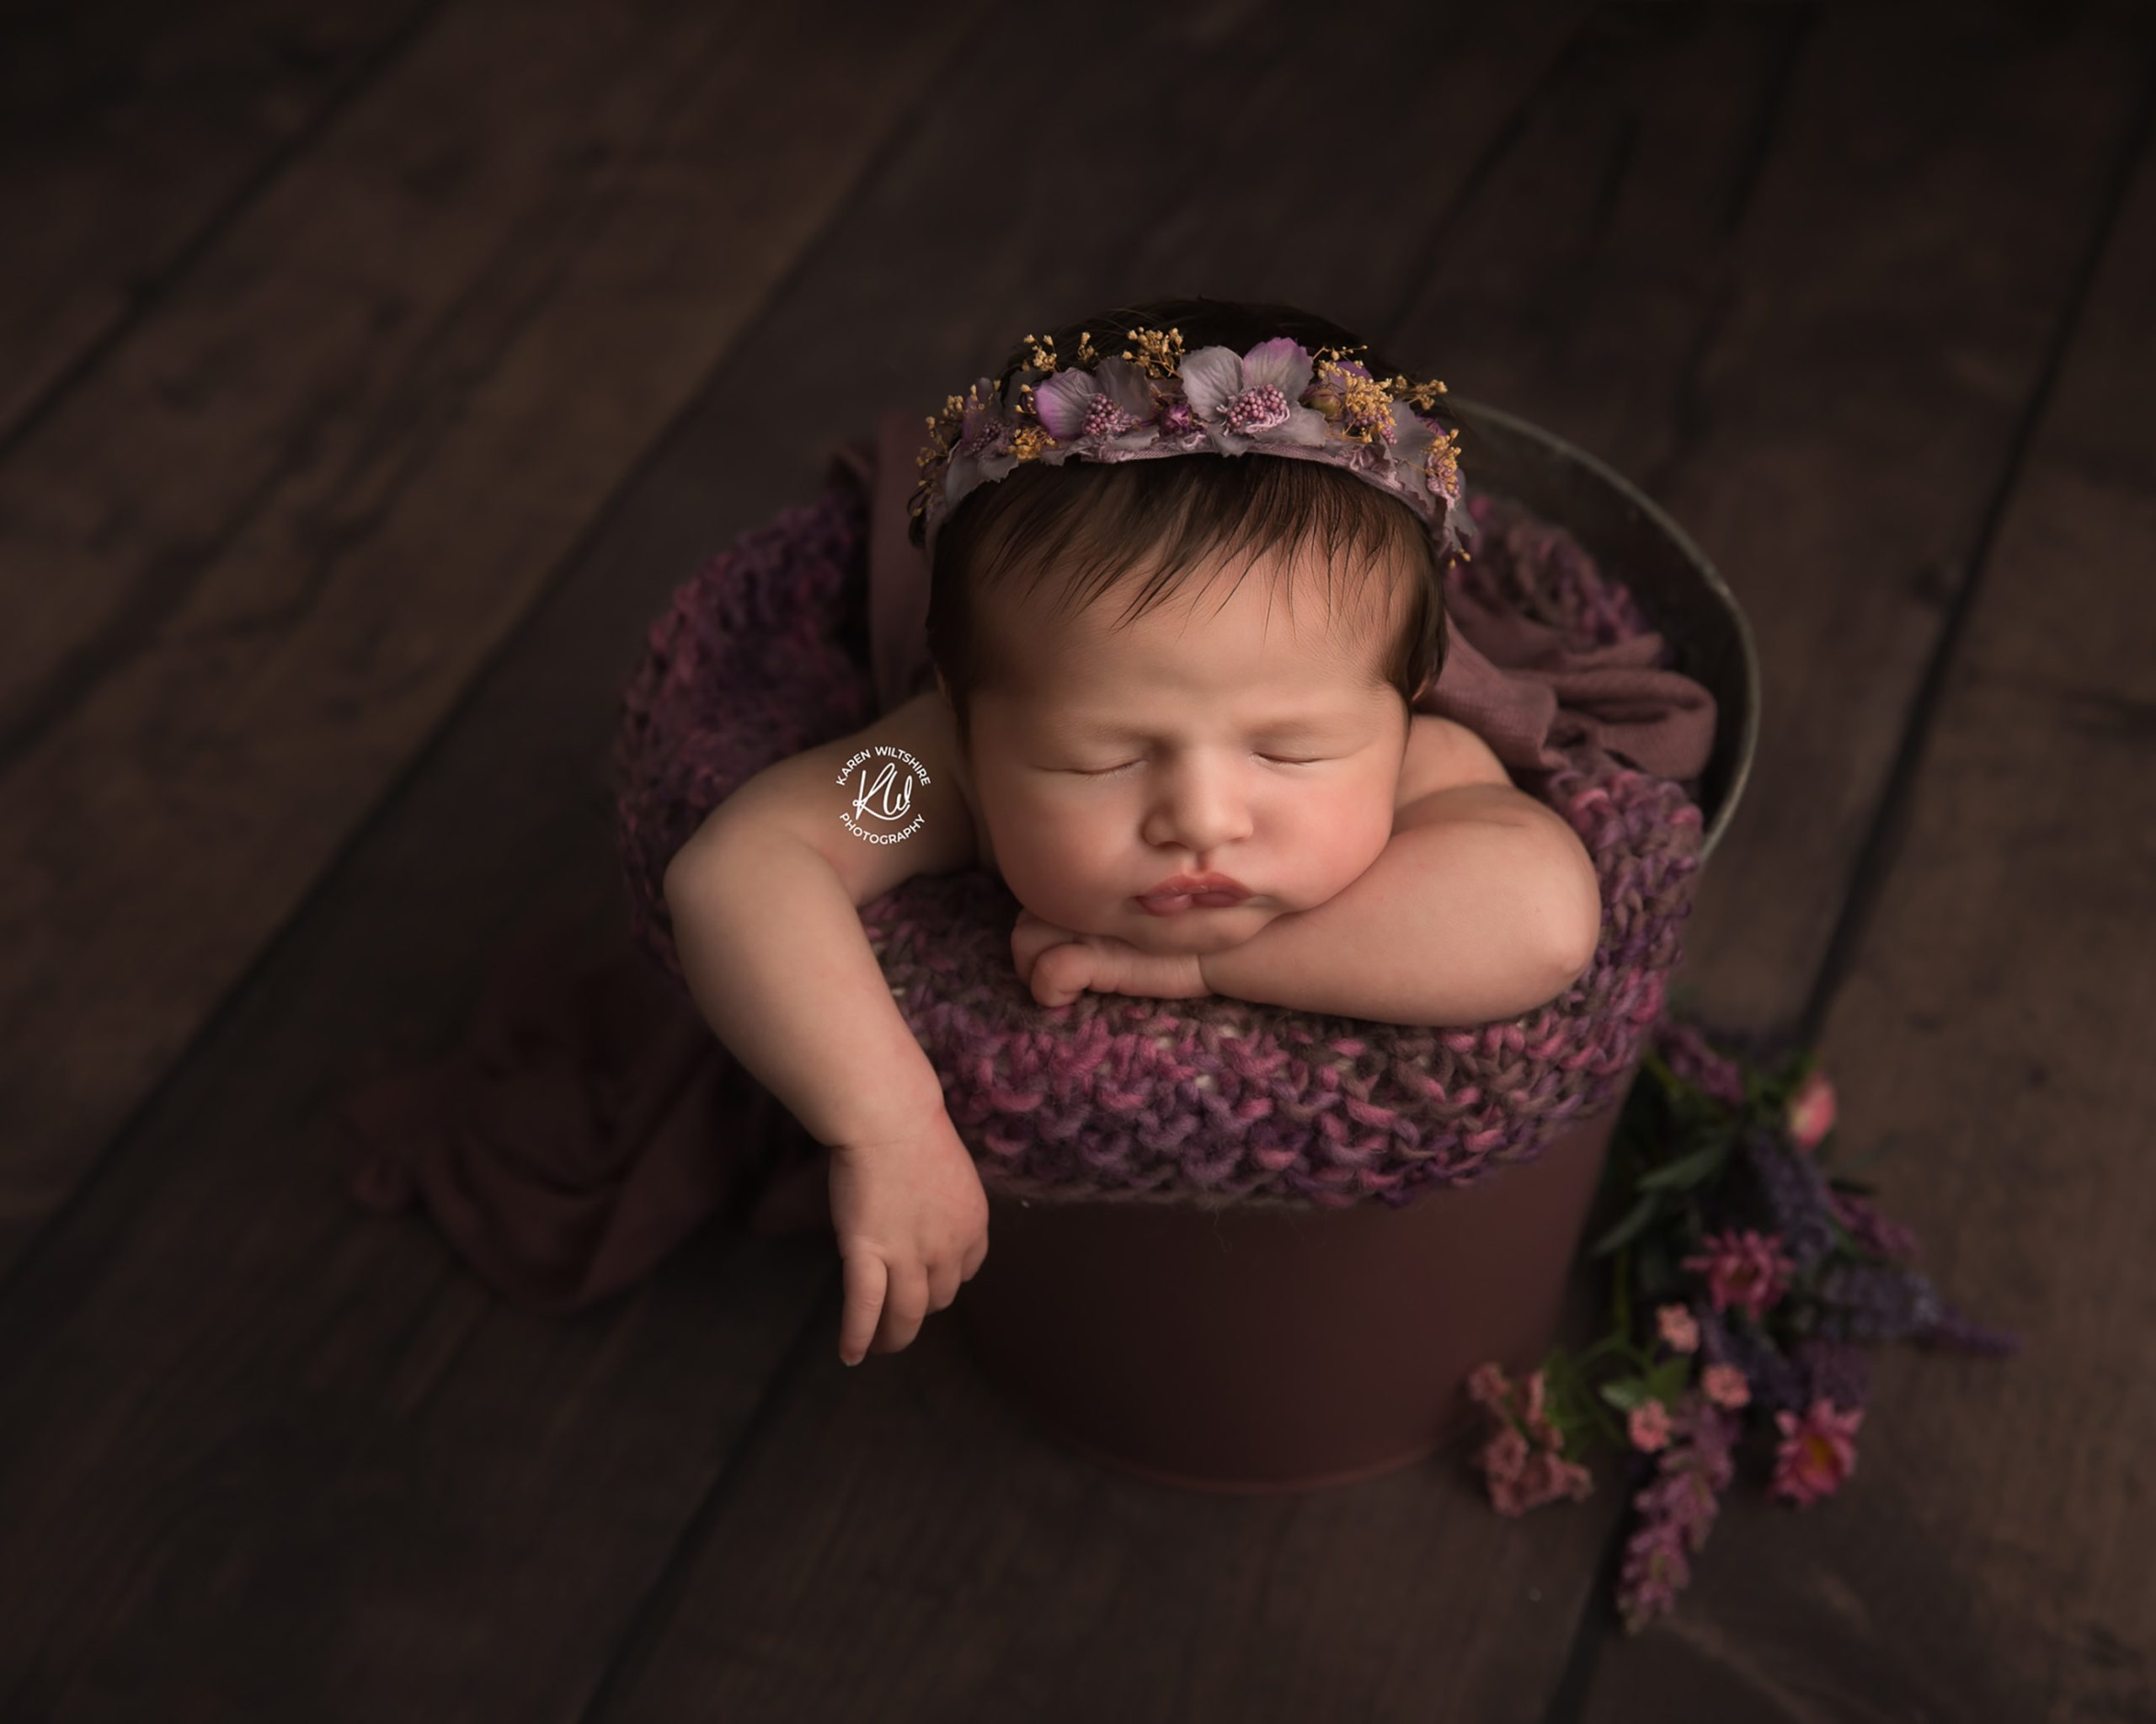 Baby girl sleeping in a bucket posed with flowers